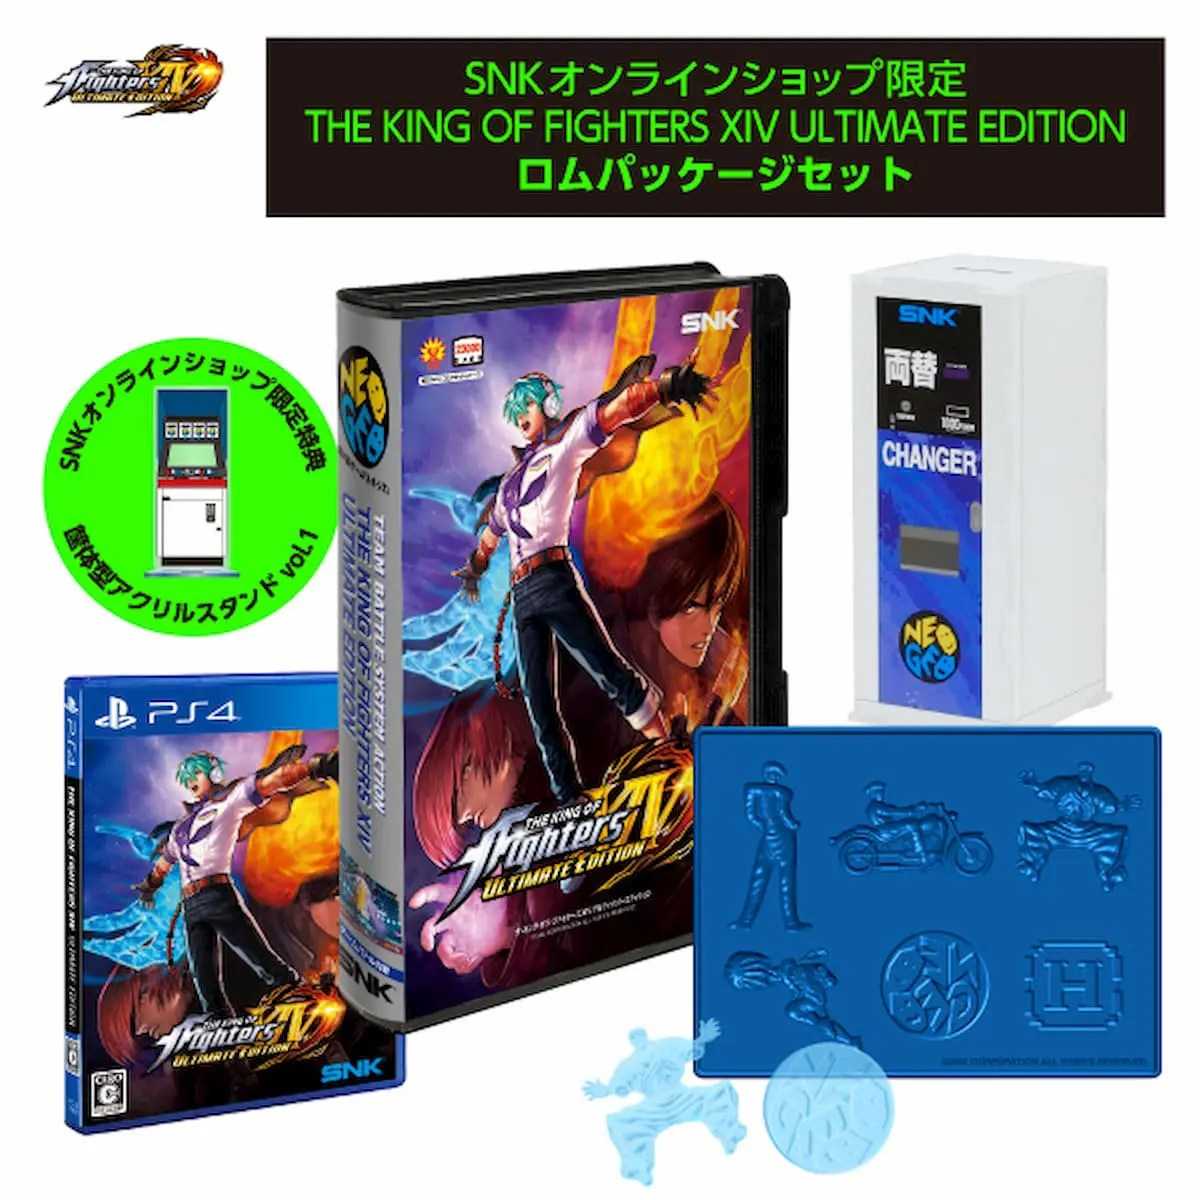 THE KING OF FIGHTERS XIV ULTIMATE EDITION ロムパッケージセット - PS4